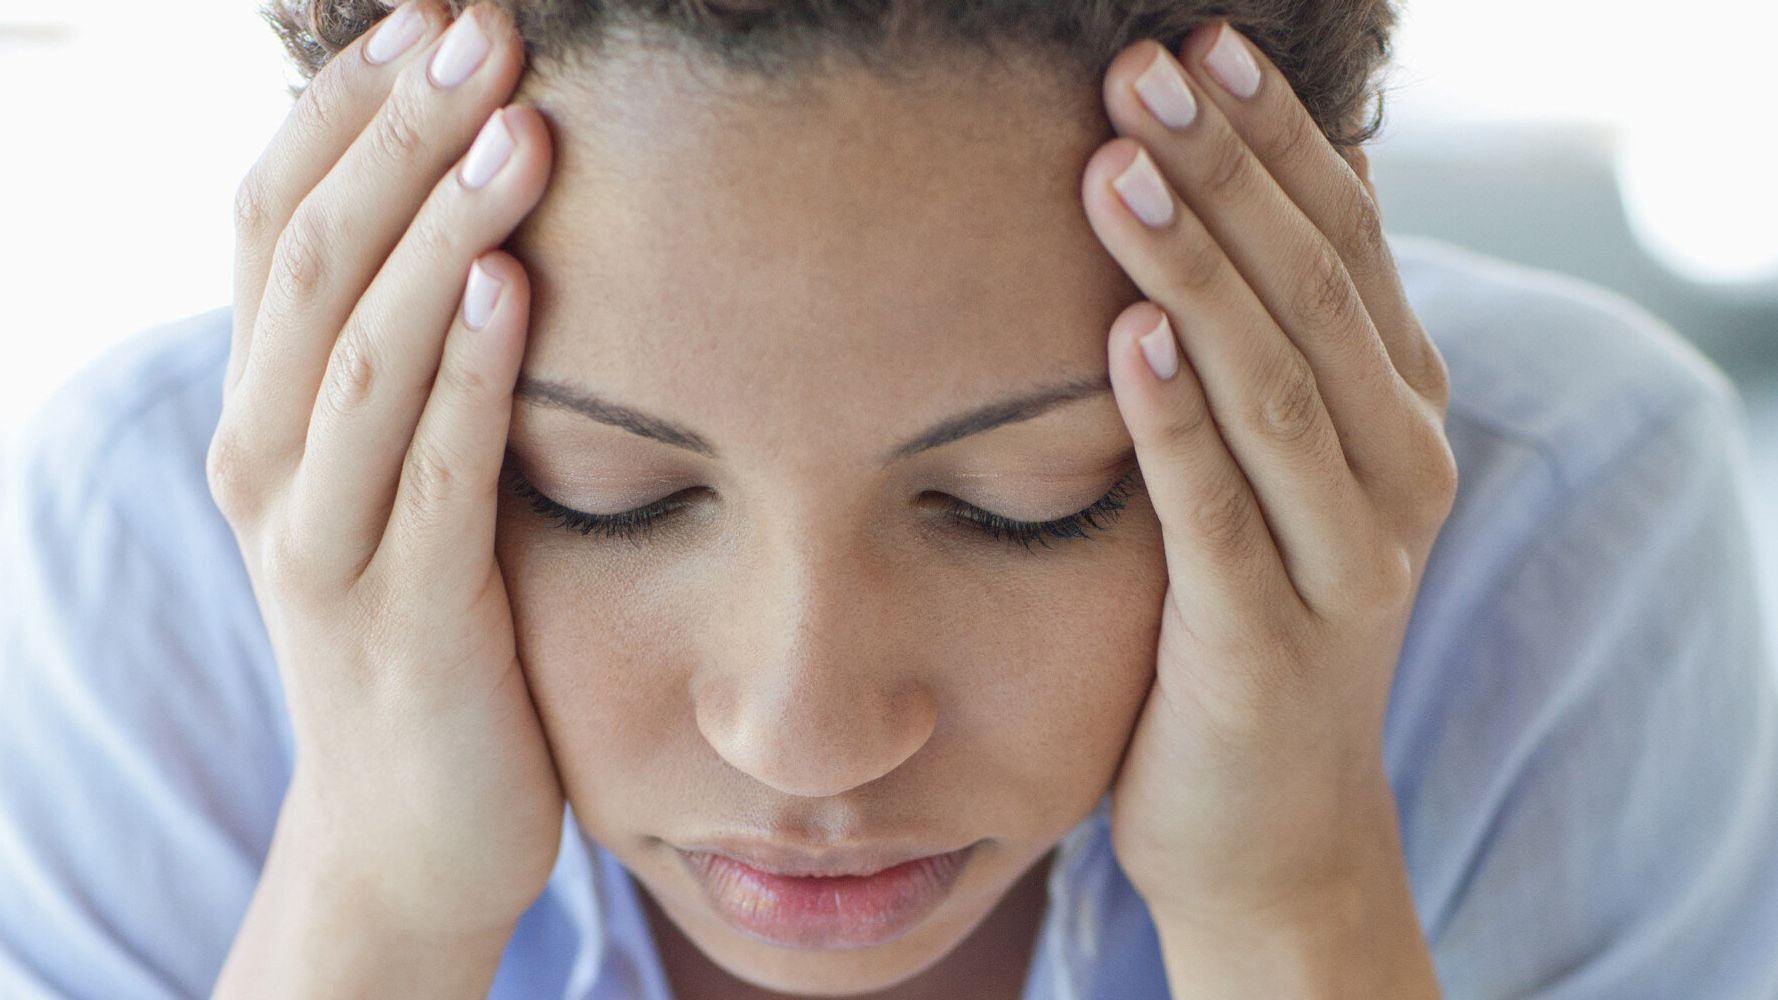 Migraine: A Burden on Patients, And a Strain on the NHS